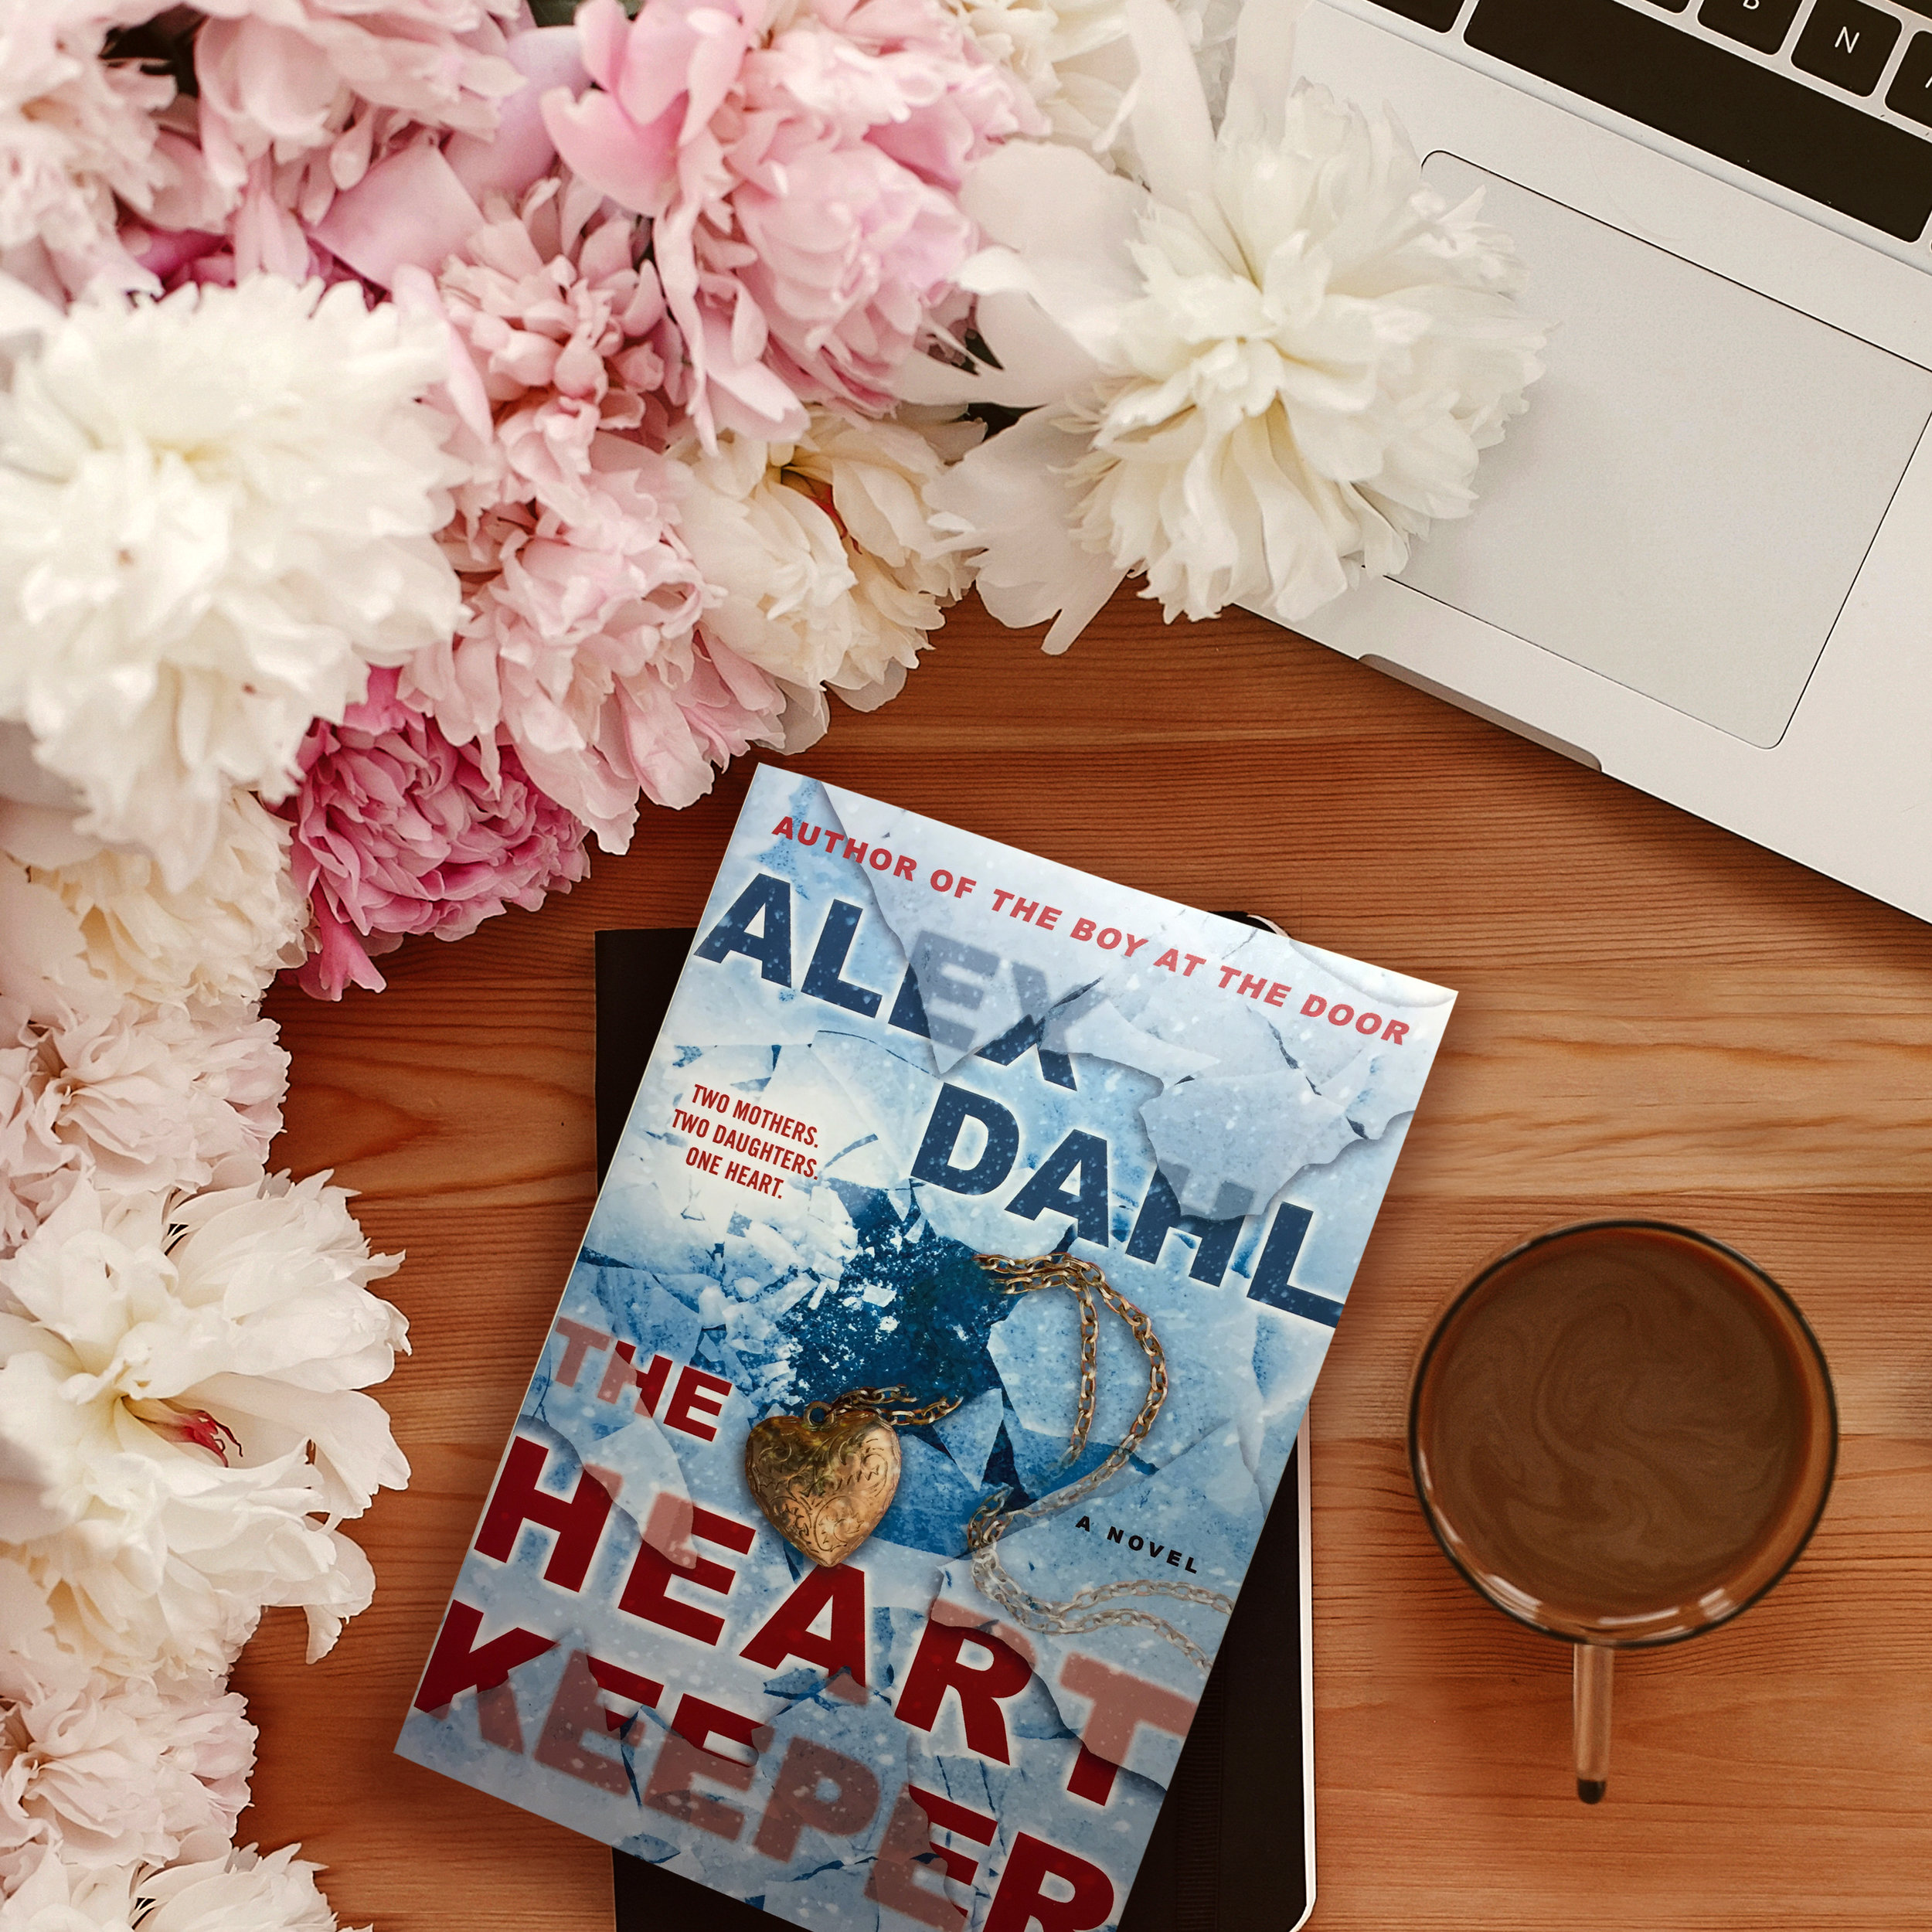 * Book Review for THE HEART KEEPER by Alex Dahl *